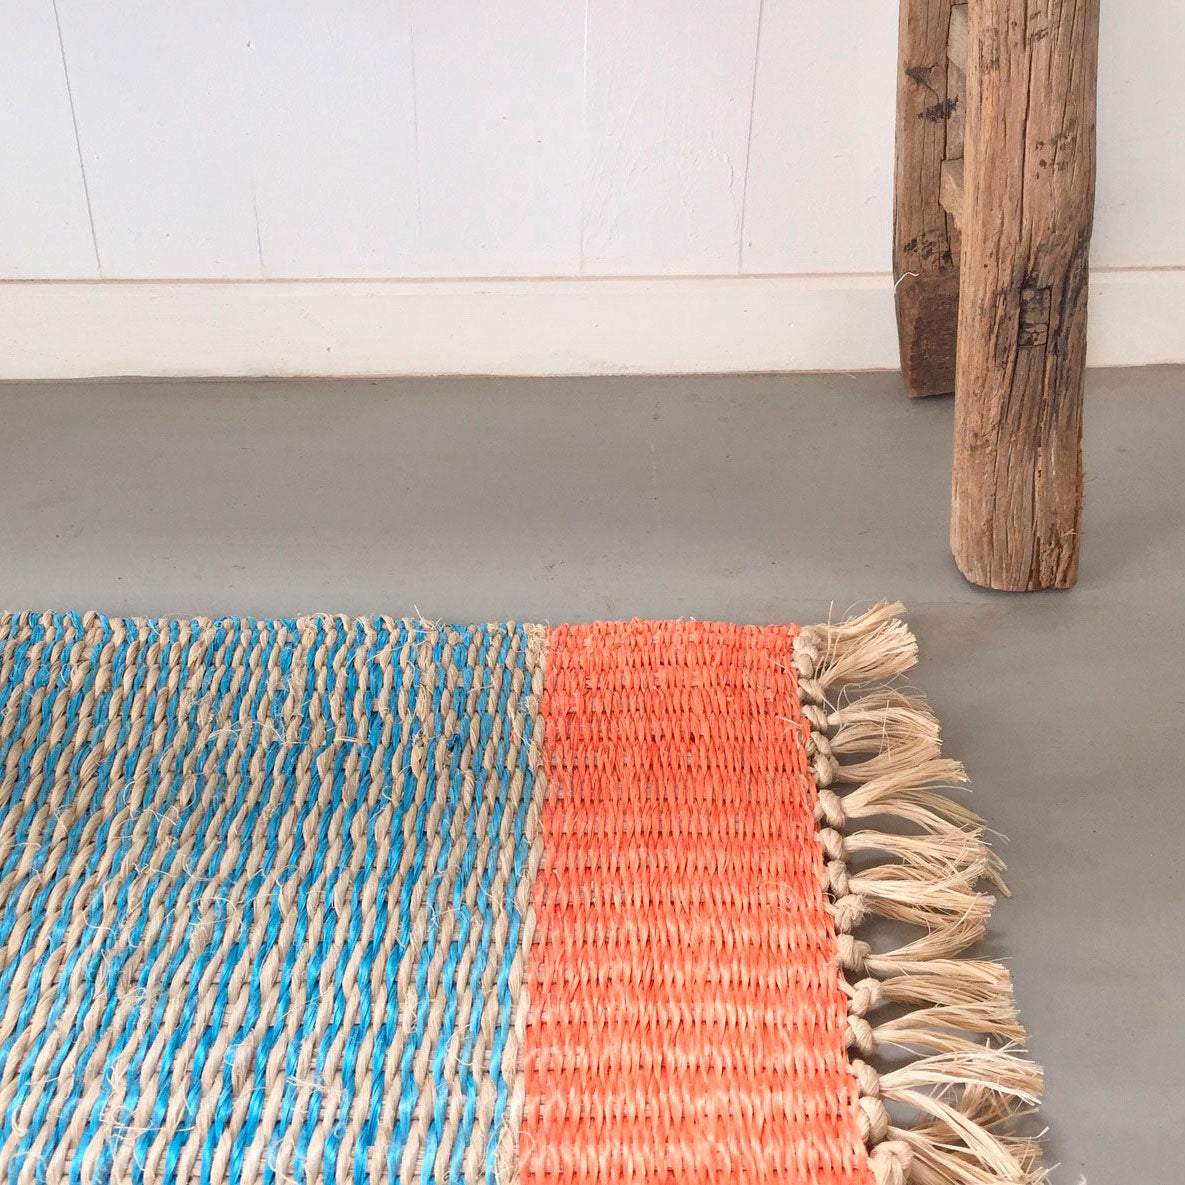 100% recycled plastic rope rugs